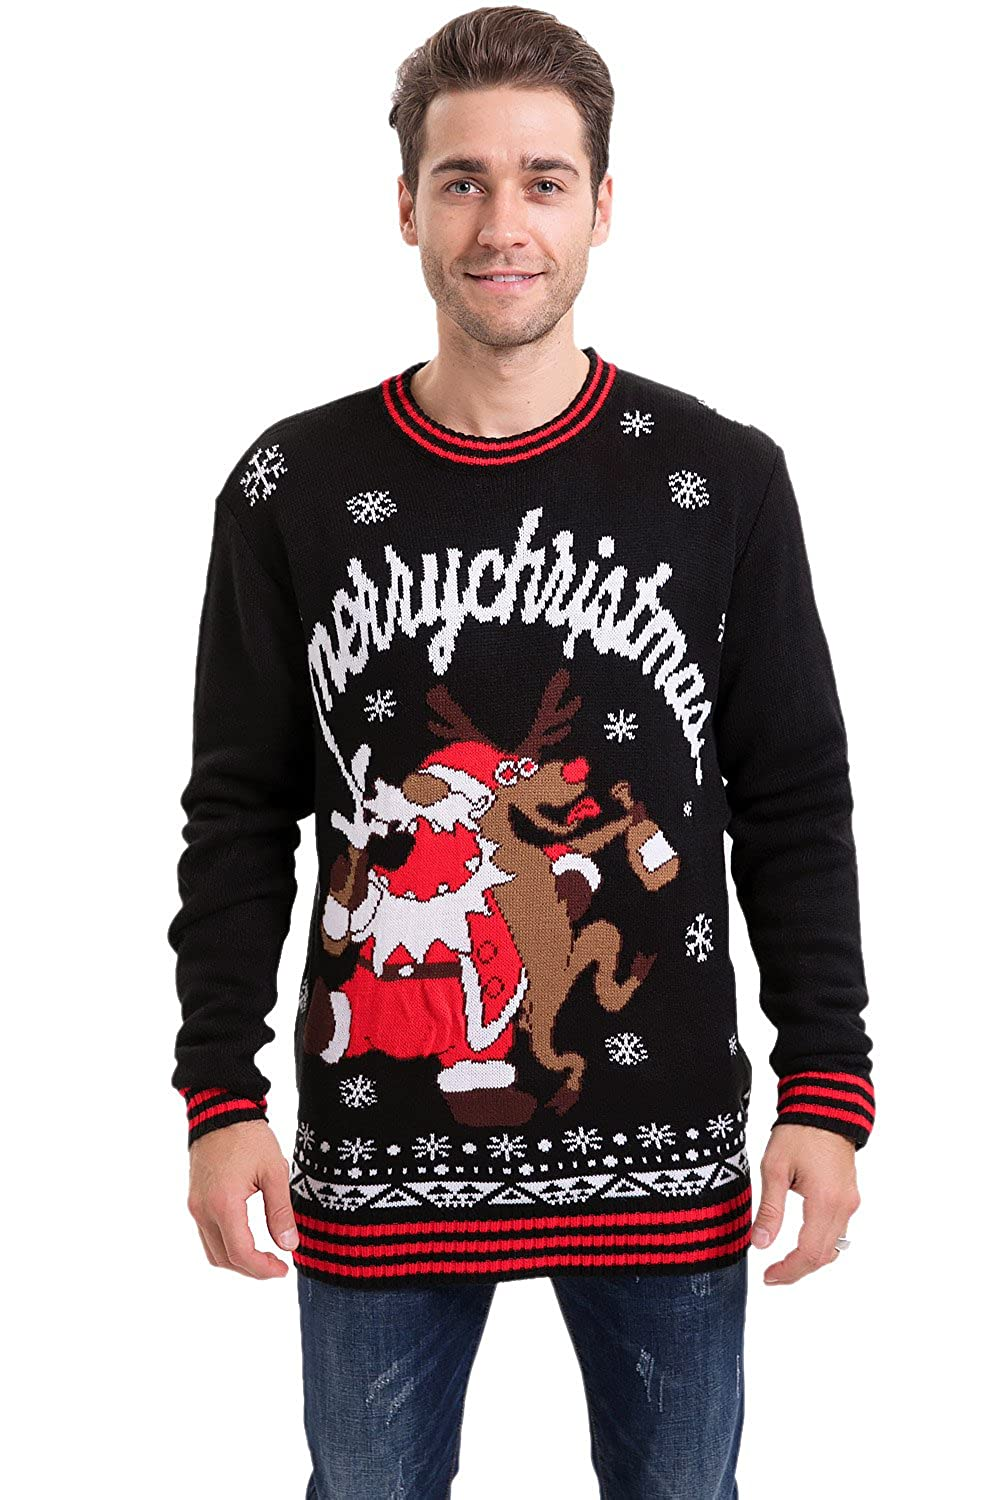 8a12d9fb85565 Top 10 wholesale High Quality Christmas Sweaters - Chinabrands.com